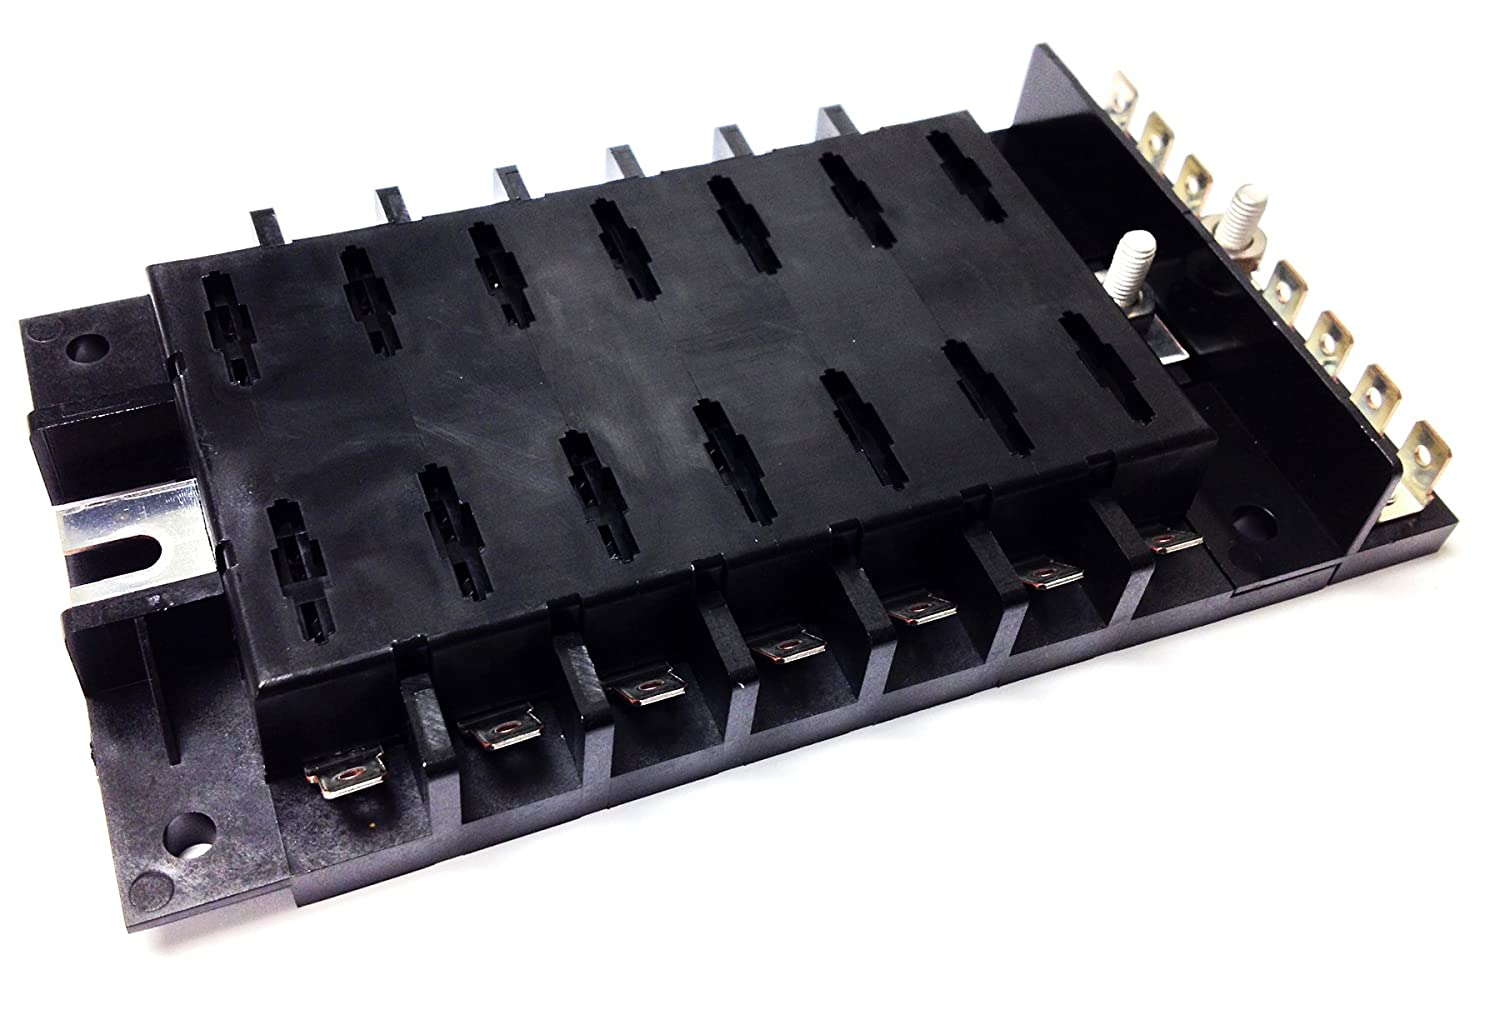 713bSrsIHyL._SL1500_ amazon com sierra fs40440 fuse block cole hersee 46377 14 2003 Chevy Fuse Block Diagrams at gsmx.co